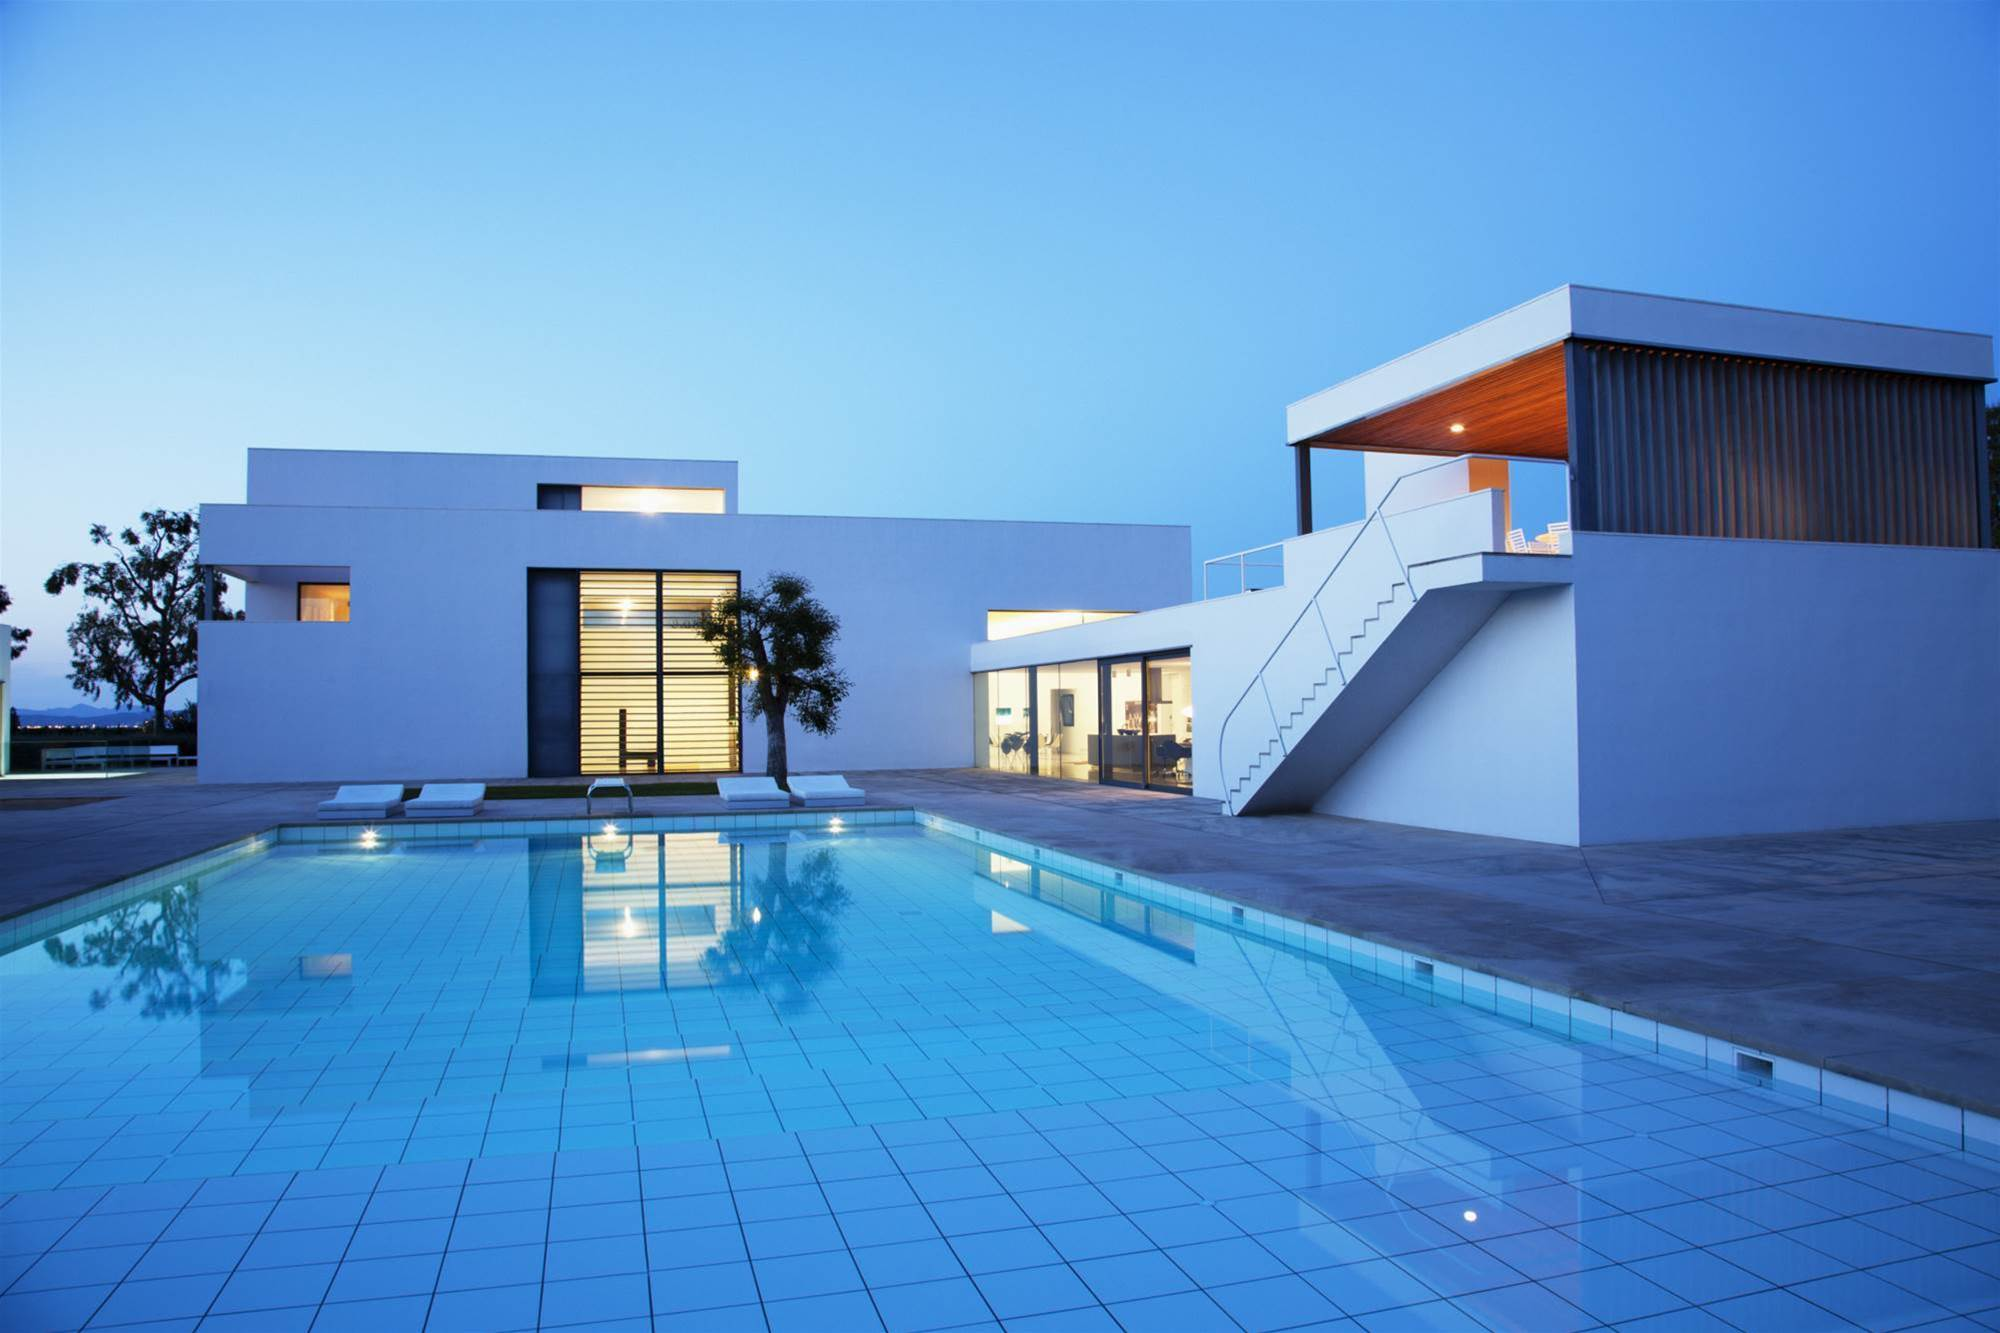 Smart pool trial aims to slash power usage